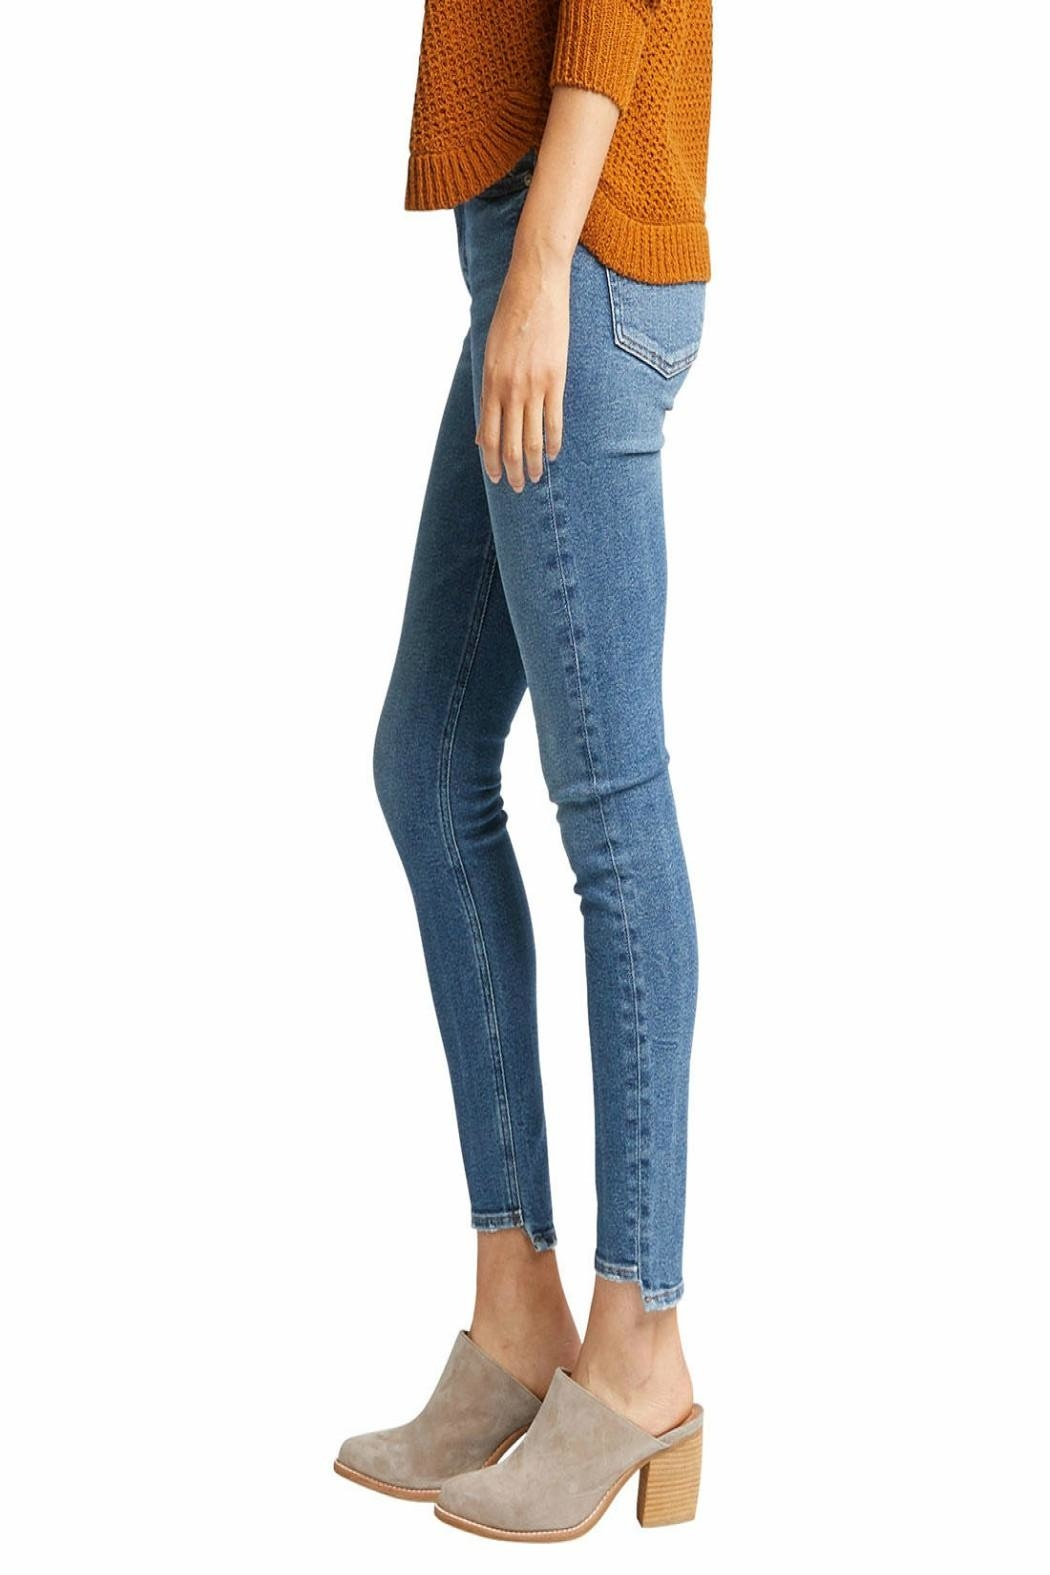 Silver Jeans Co. Most Wanted Skinny - Side Cropped Image